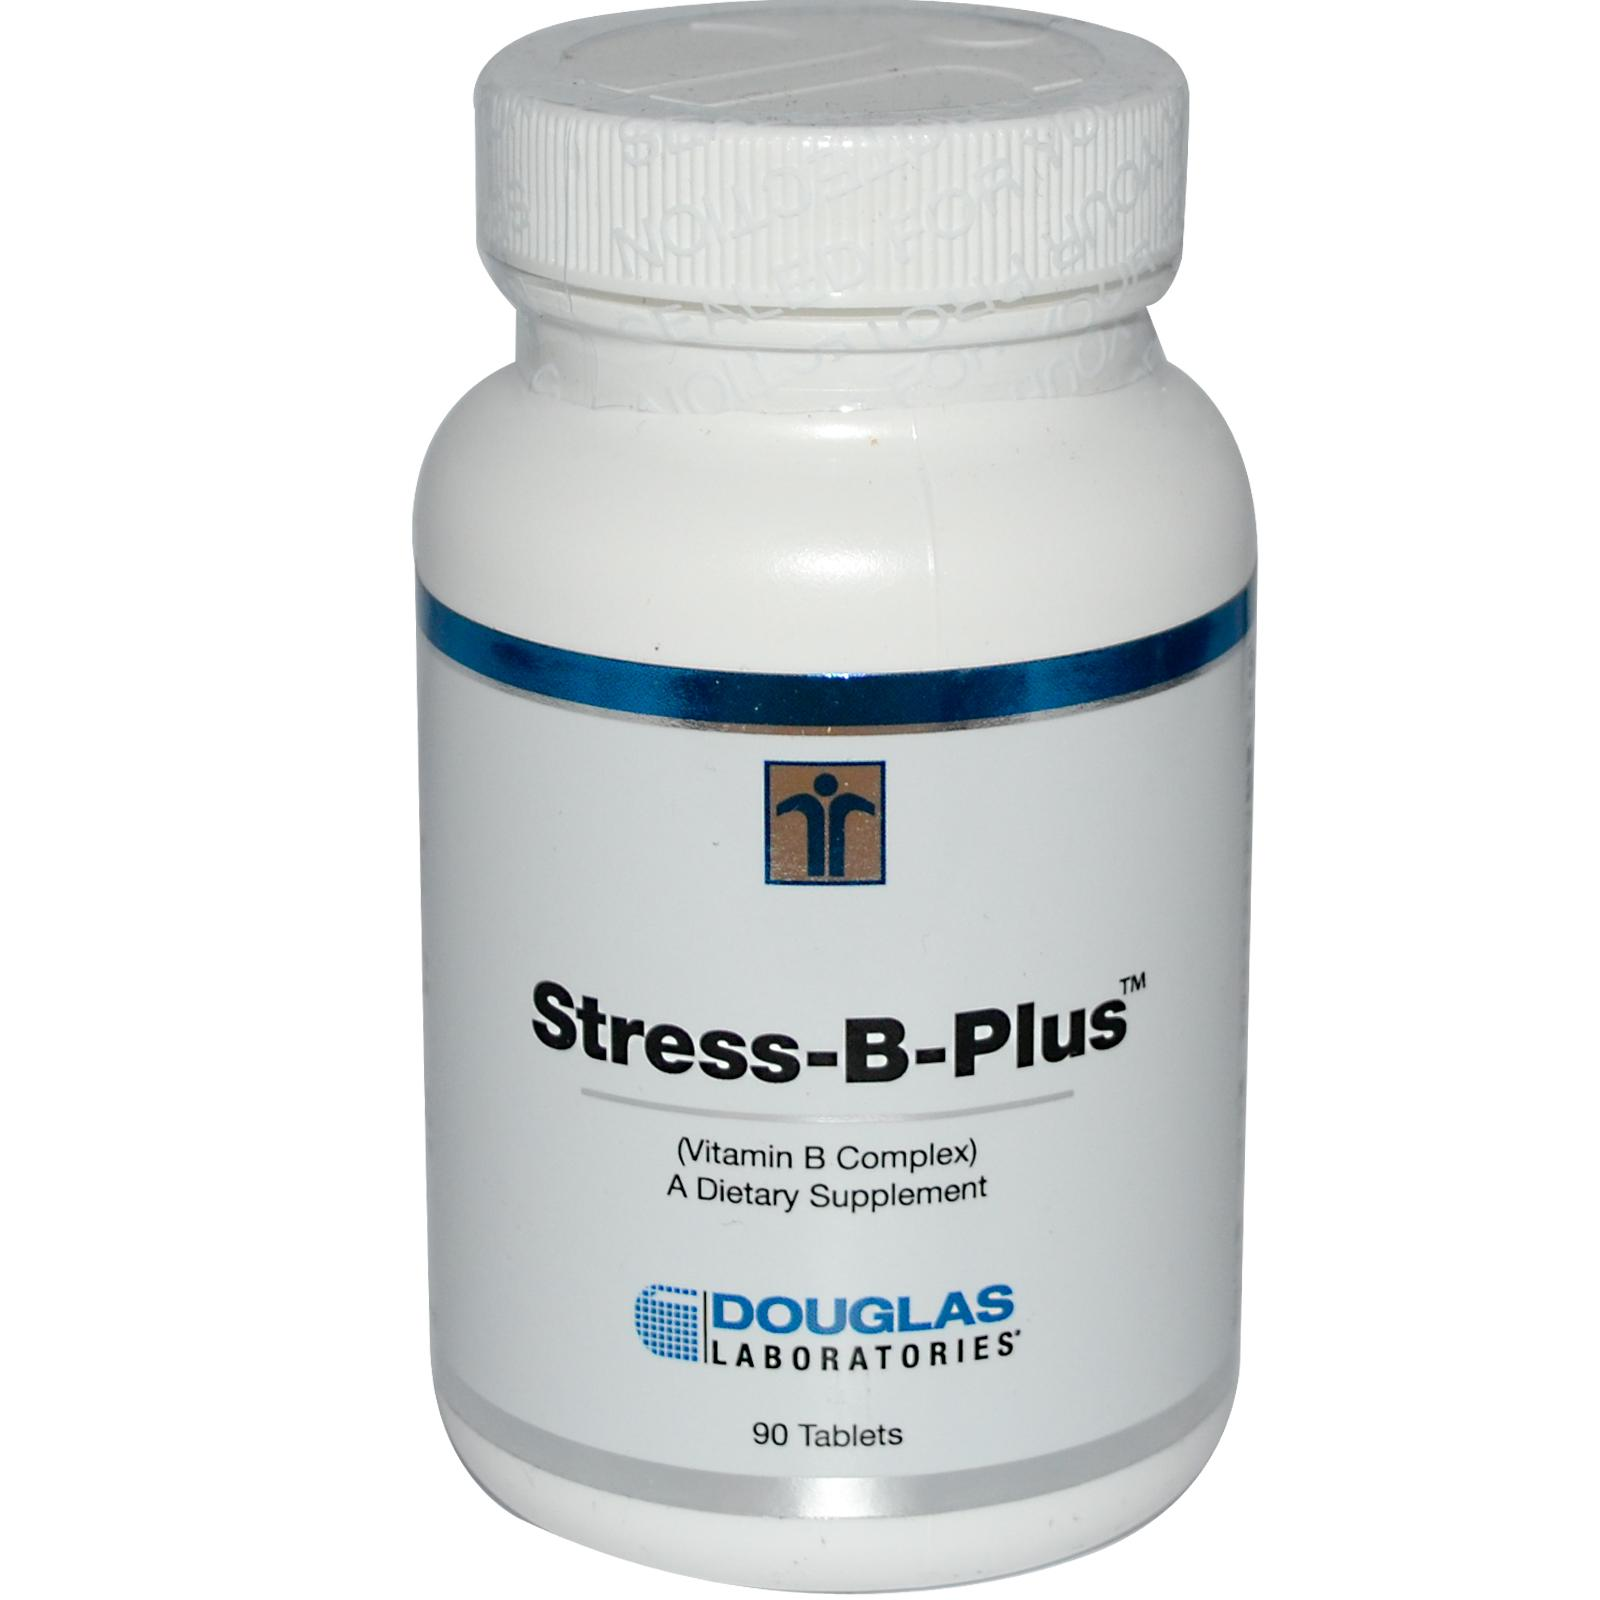 Stress B Plus vitamine B Complex (90 tabletten) Douglas Laboratories